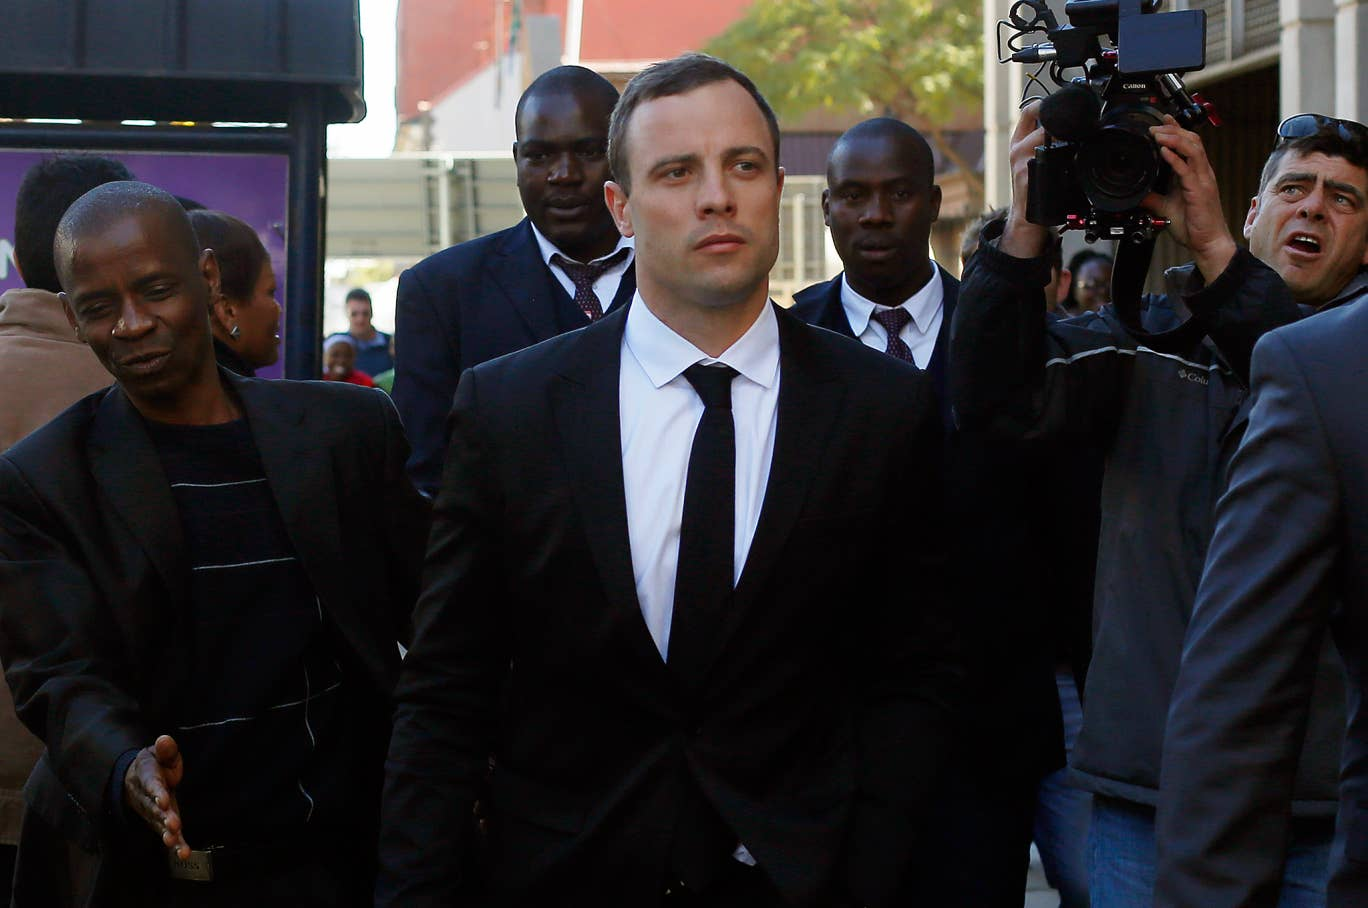 Oscar Pistorius leaves court in Pretoria, South Africa in his ongoing murder trail. Prosecutors and lawyers for Oscar Pistorius have one last chance to convince a South African judge when they present closing arguments this week